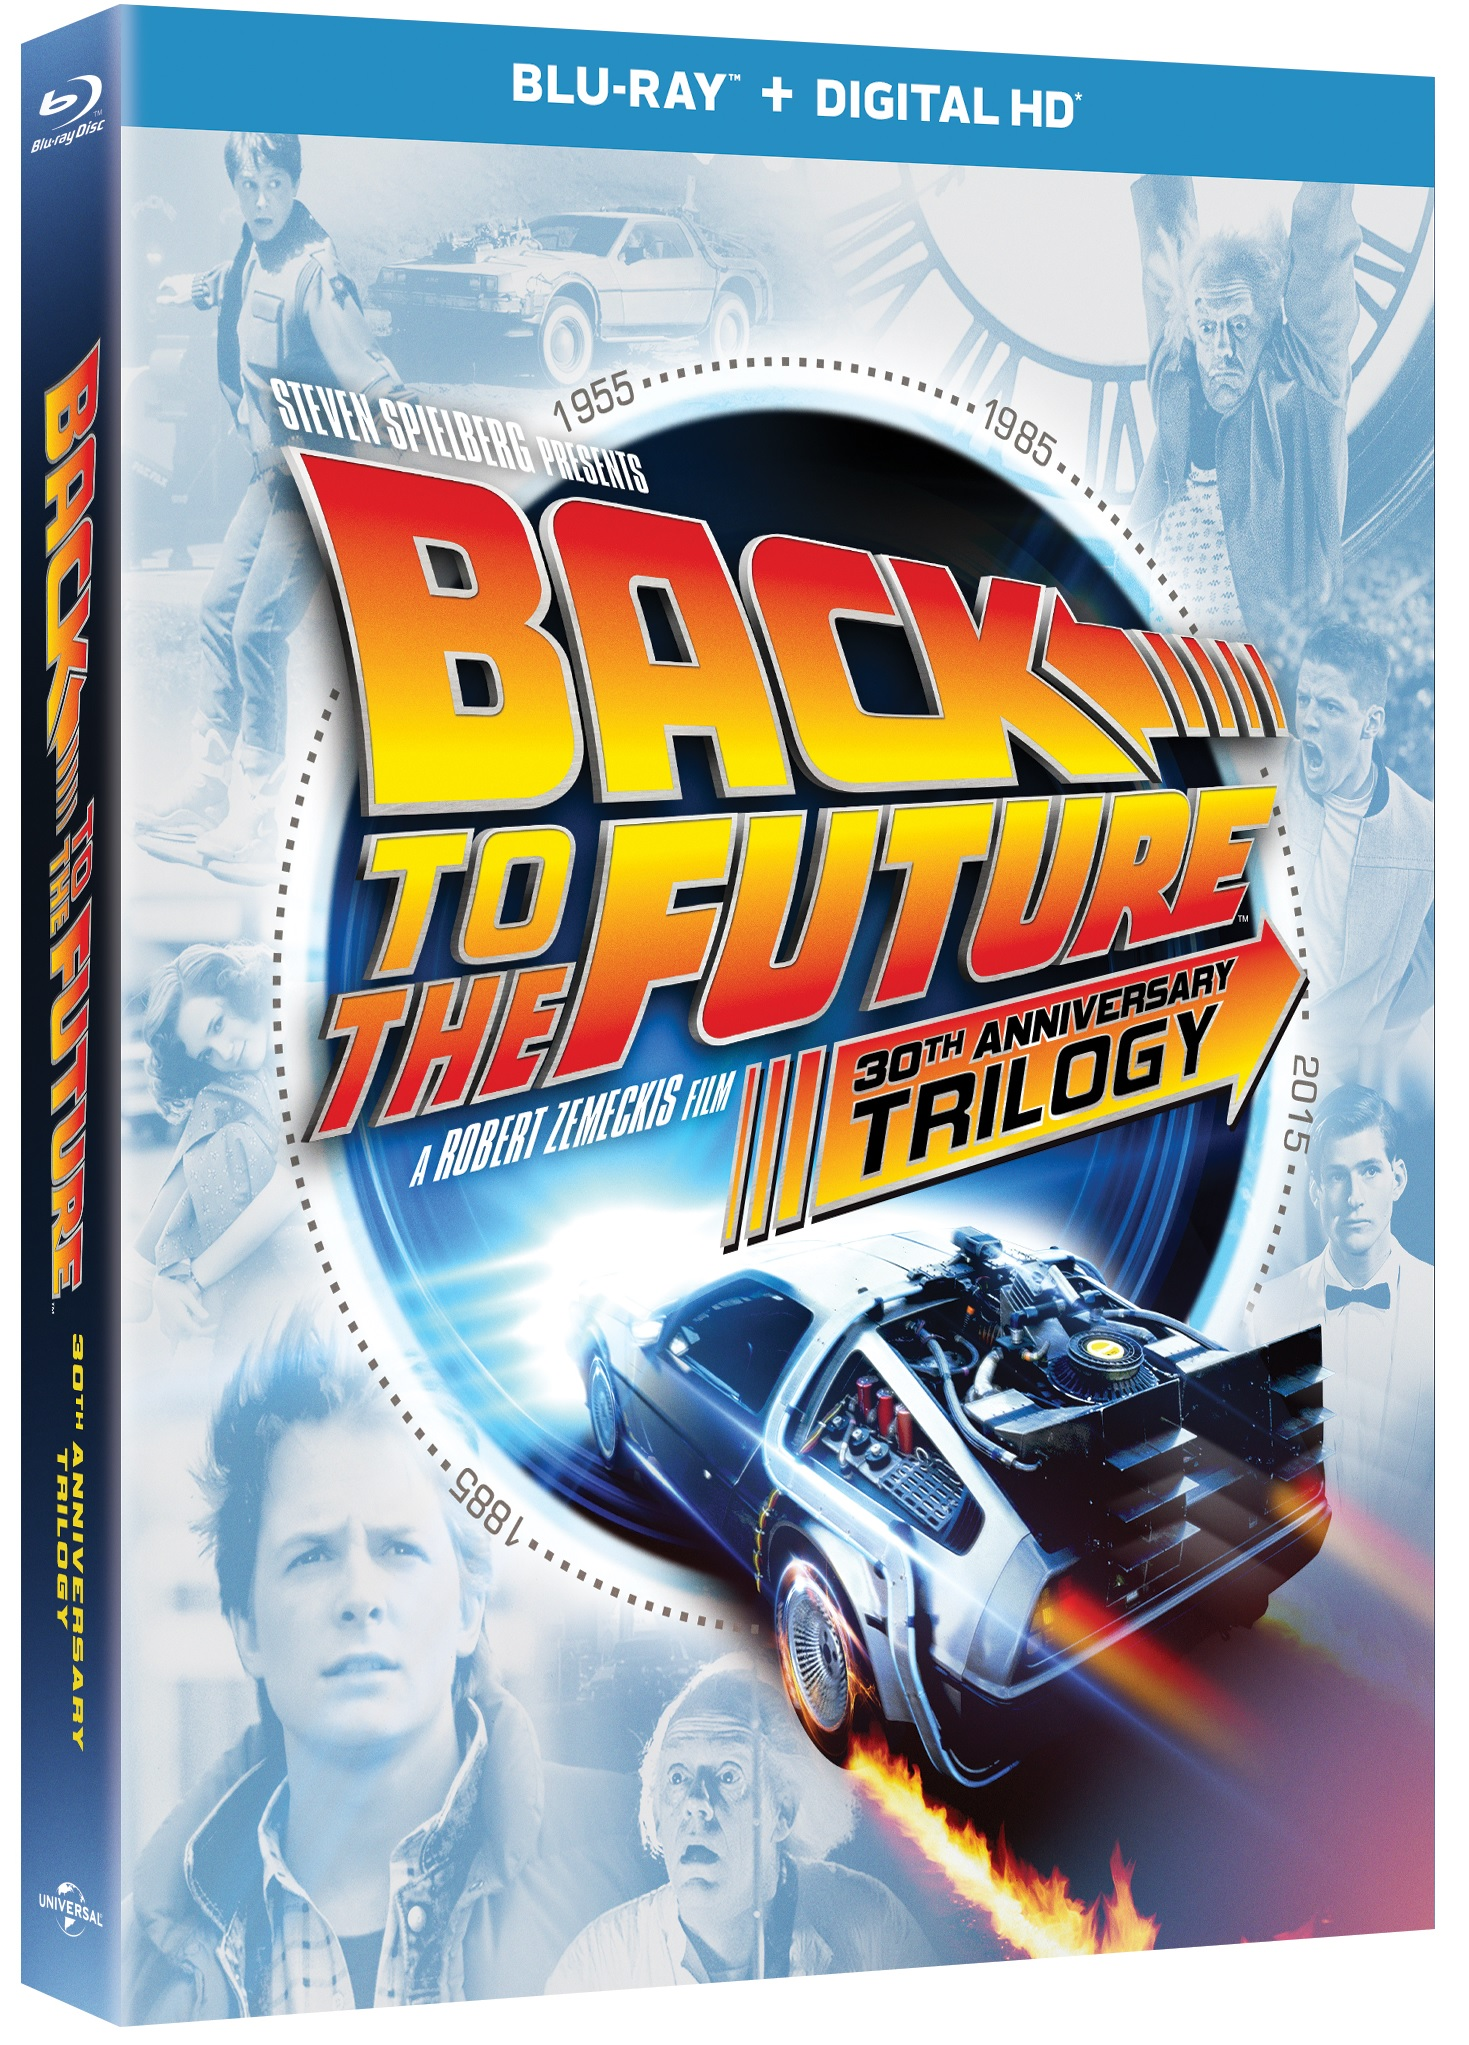 Back to The Future 30 Anniversary Trilogy Blu-ray Review